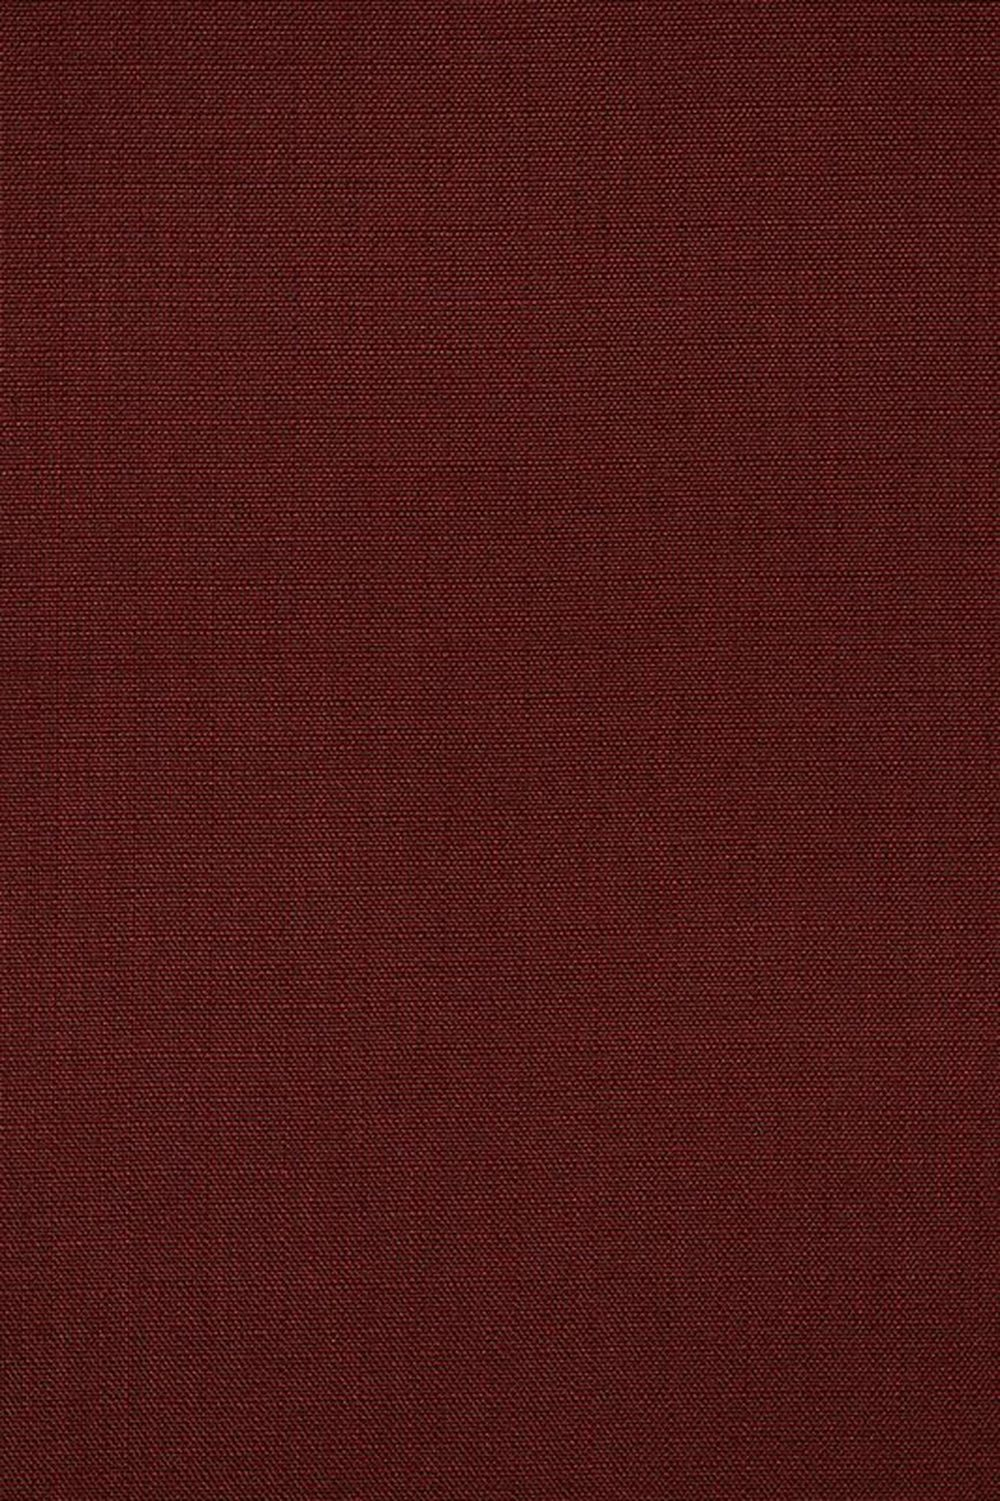 Photo of the fabric Stallion 2 UC Bordeaux swatch by James Dunlop Essentials. Use for Drapery, Accessory. Style of Plain